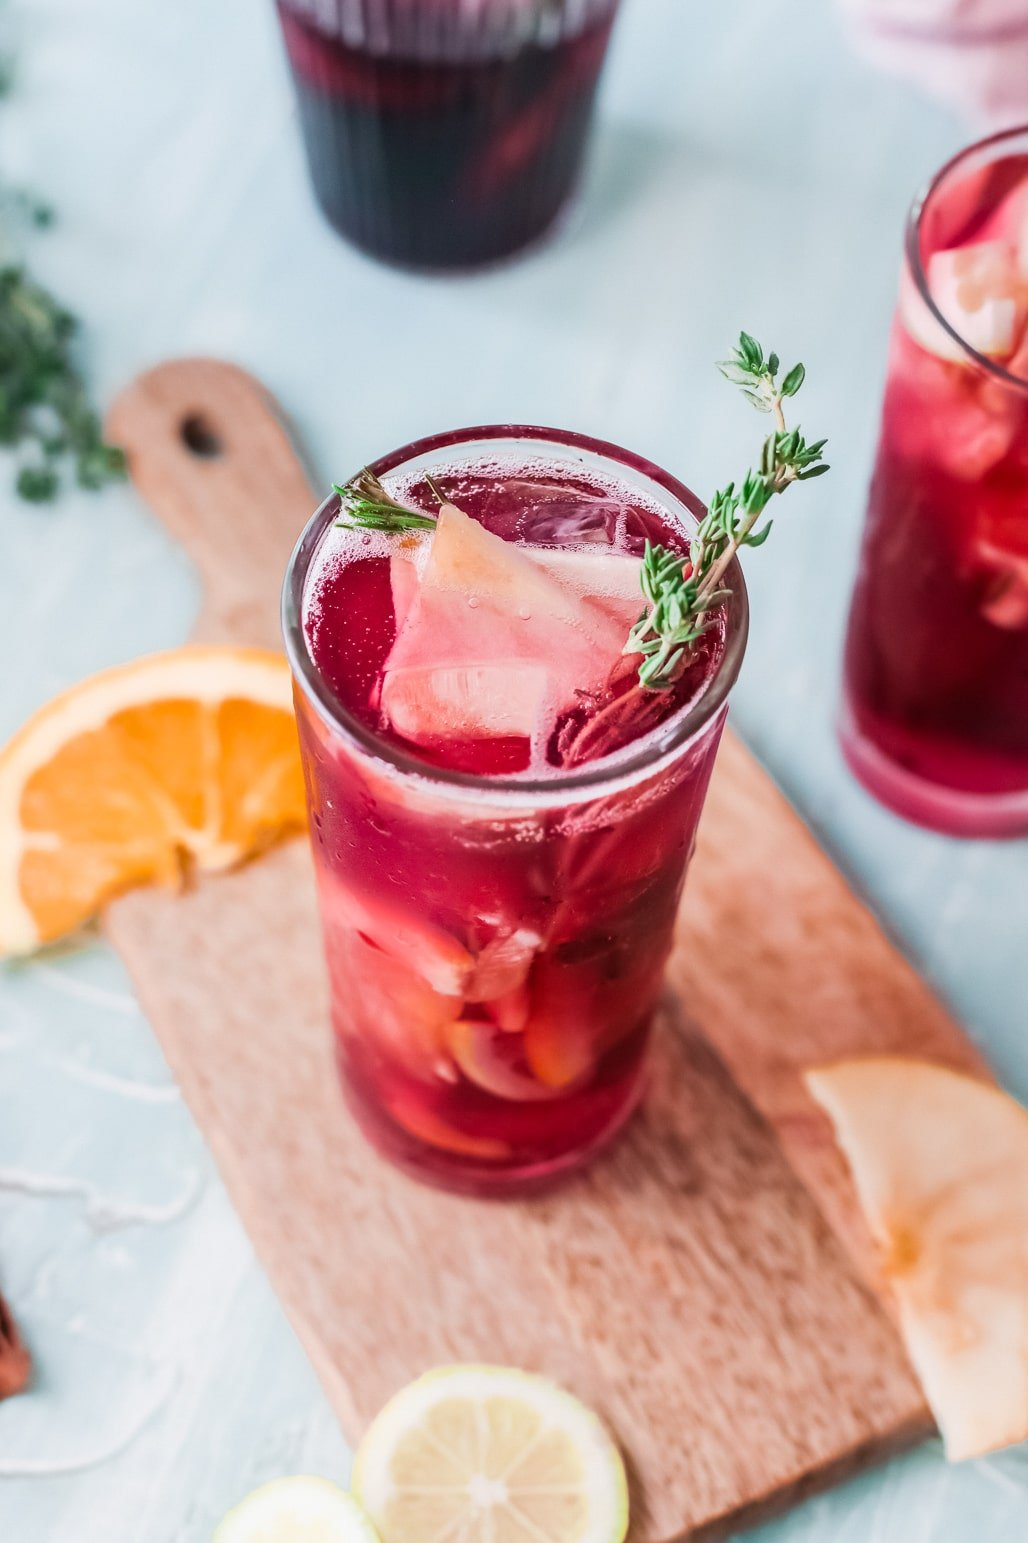 Sparkling Red Wine Sangria Garnish. Celebrate any occasion with this festive Sparkling Red Wine Sangria, made with fresh cut oranges, apples, red wine, and more! This festive fruit-infused Sparkling Sangria is an easy make-ahead cocktail that is perfect for large and small gatherings.